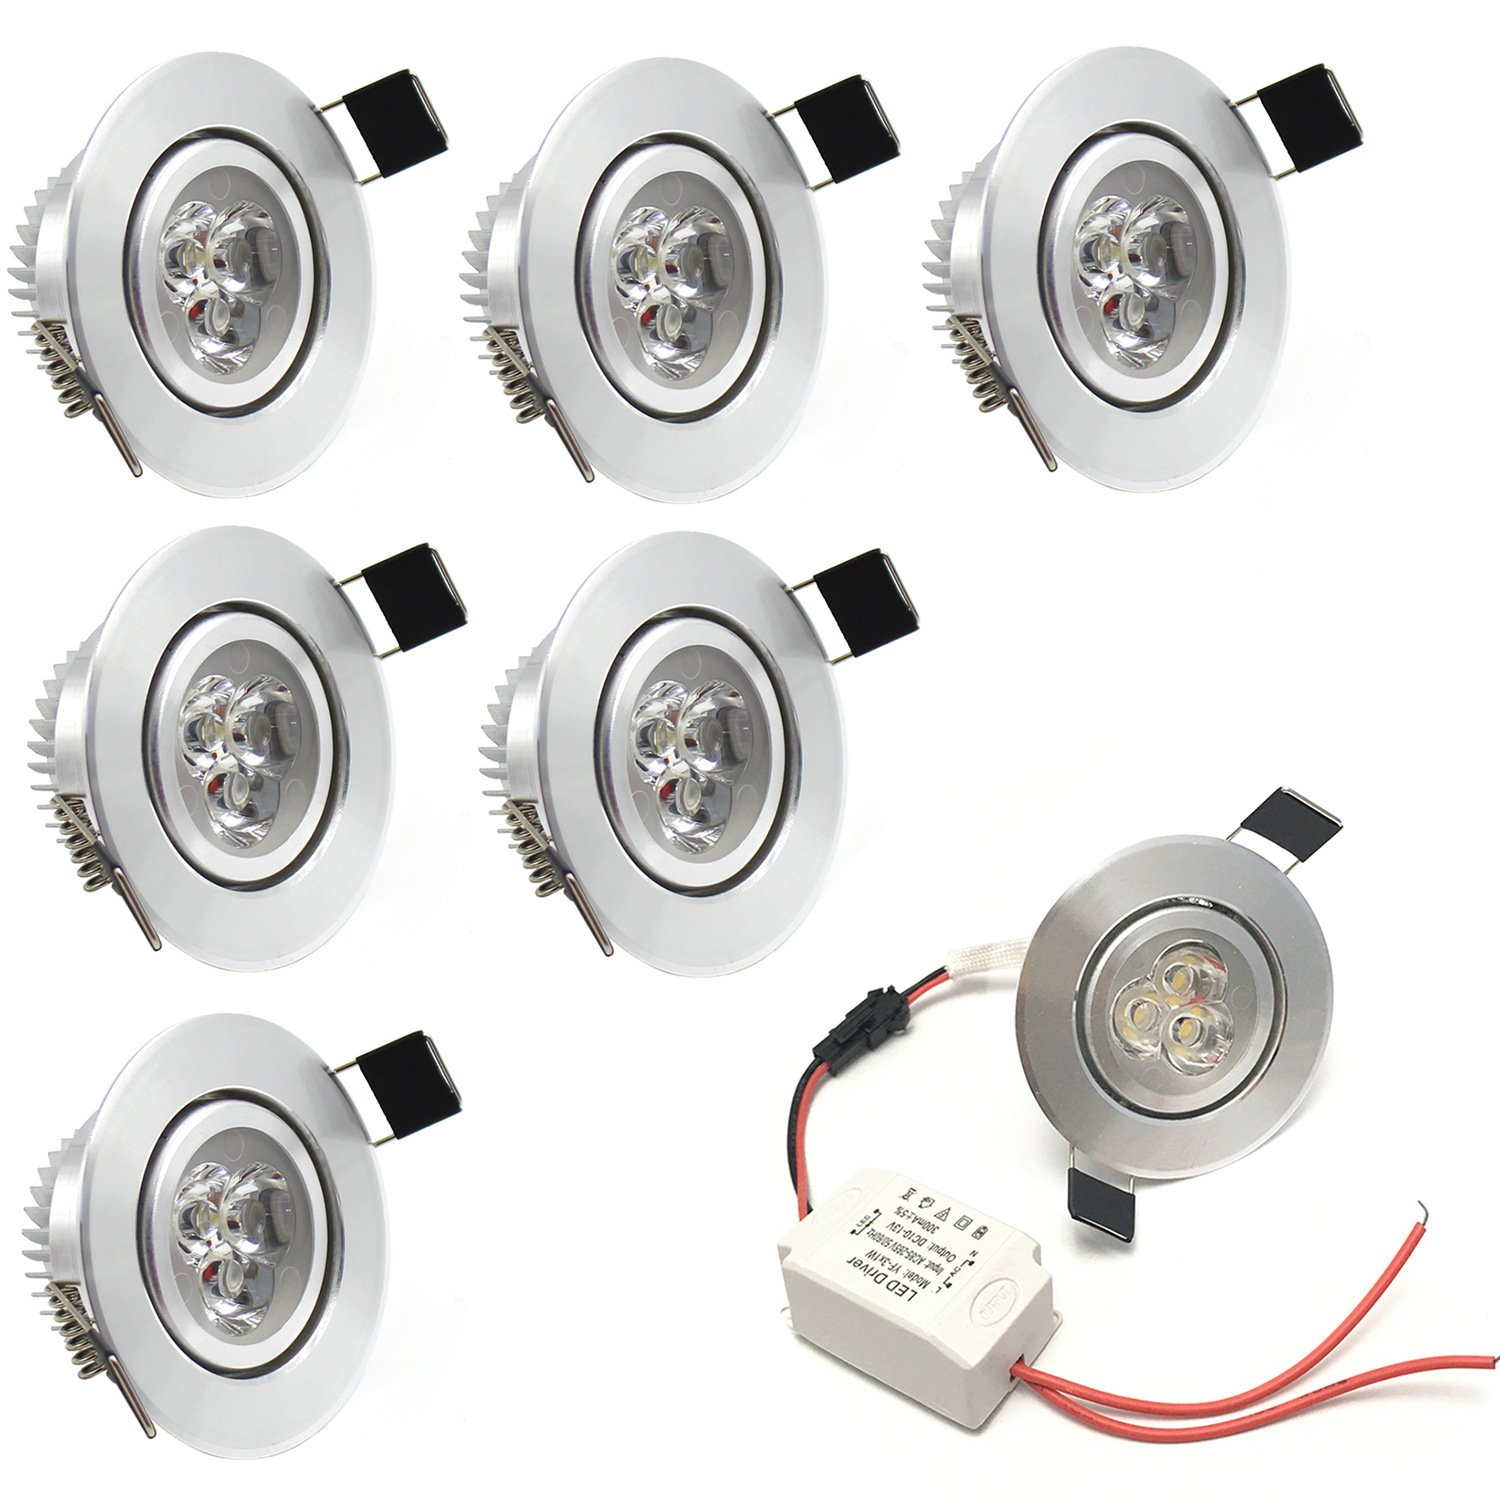 LEDIARY 3W 110-240V Recessed Led Ceiling Downlight Angle Adjustable Spotlight with LED Driver,55MM Cut Out,210 Lumen,Warm Light